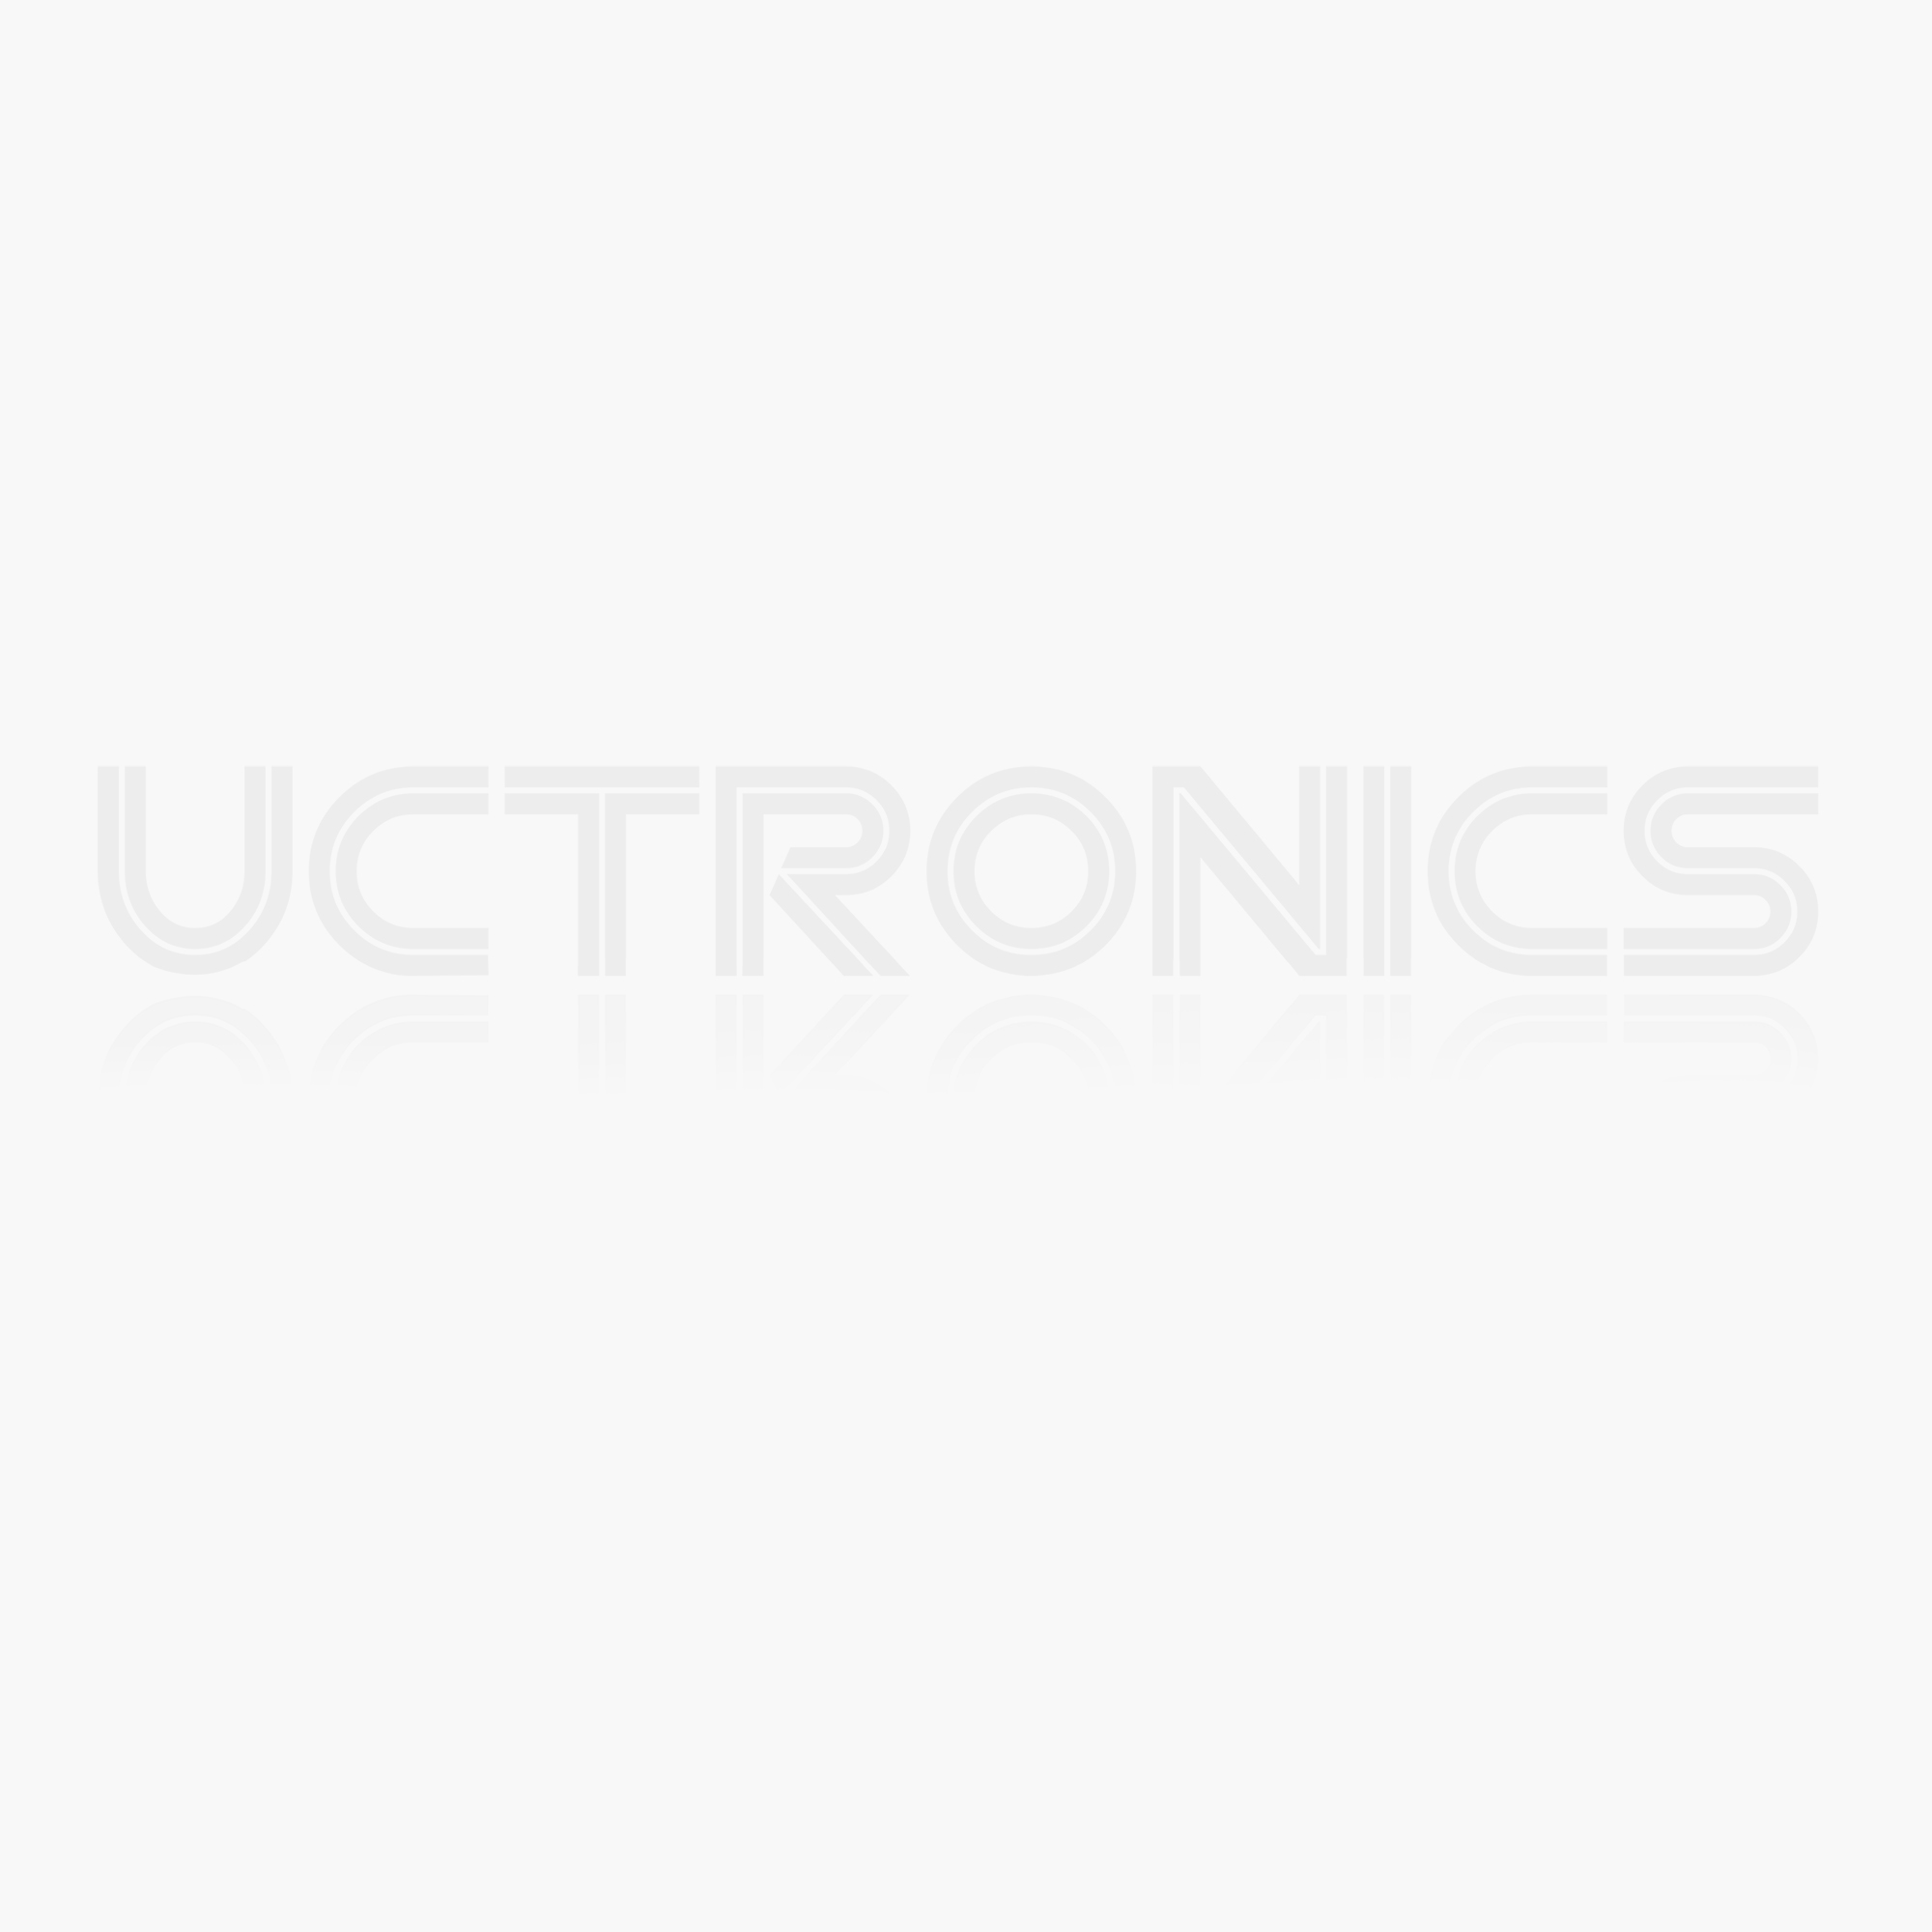 UCTRONICS Robot Car Kit for Raspberry Pi - Real Time Image & Video, Line Tracking, Obstacle Avoidance with Camera Module, Line Follower, Ultrasonic Module and App Control - Pi NOT Included